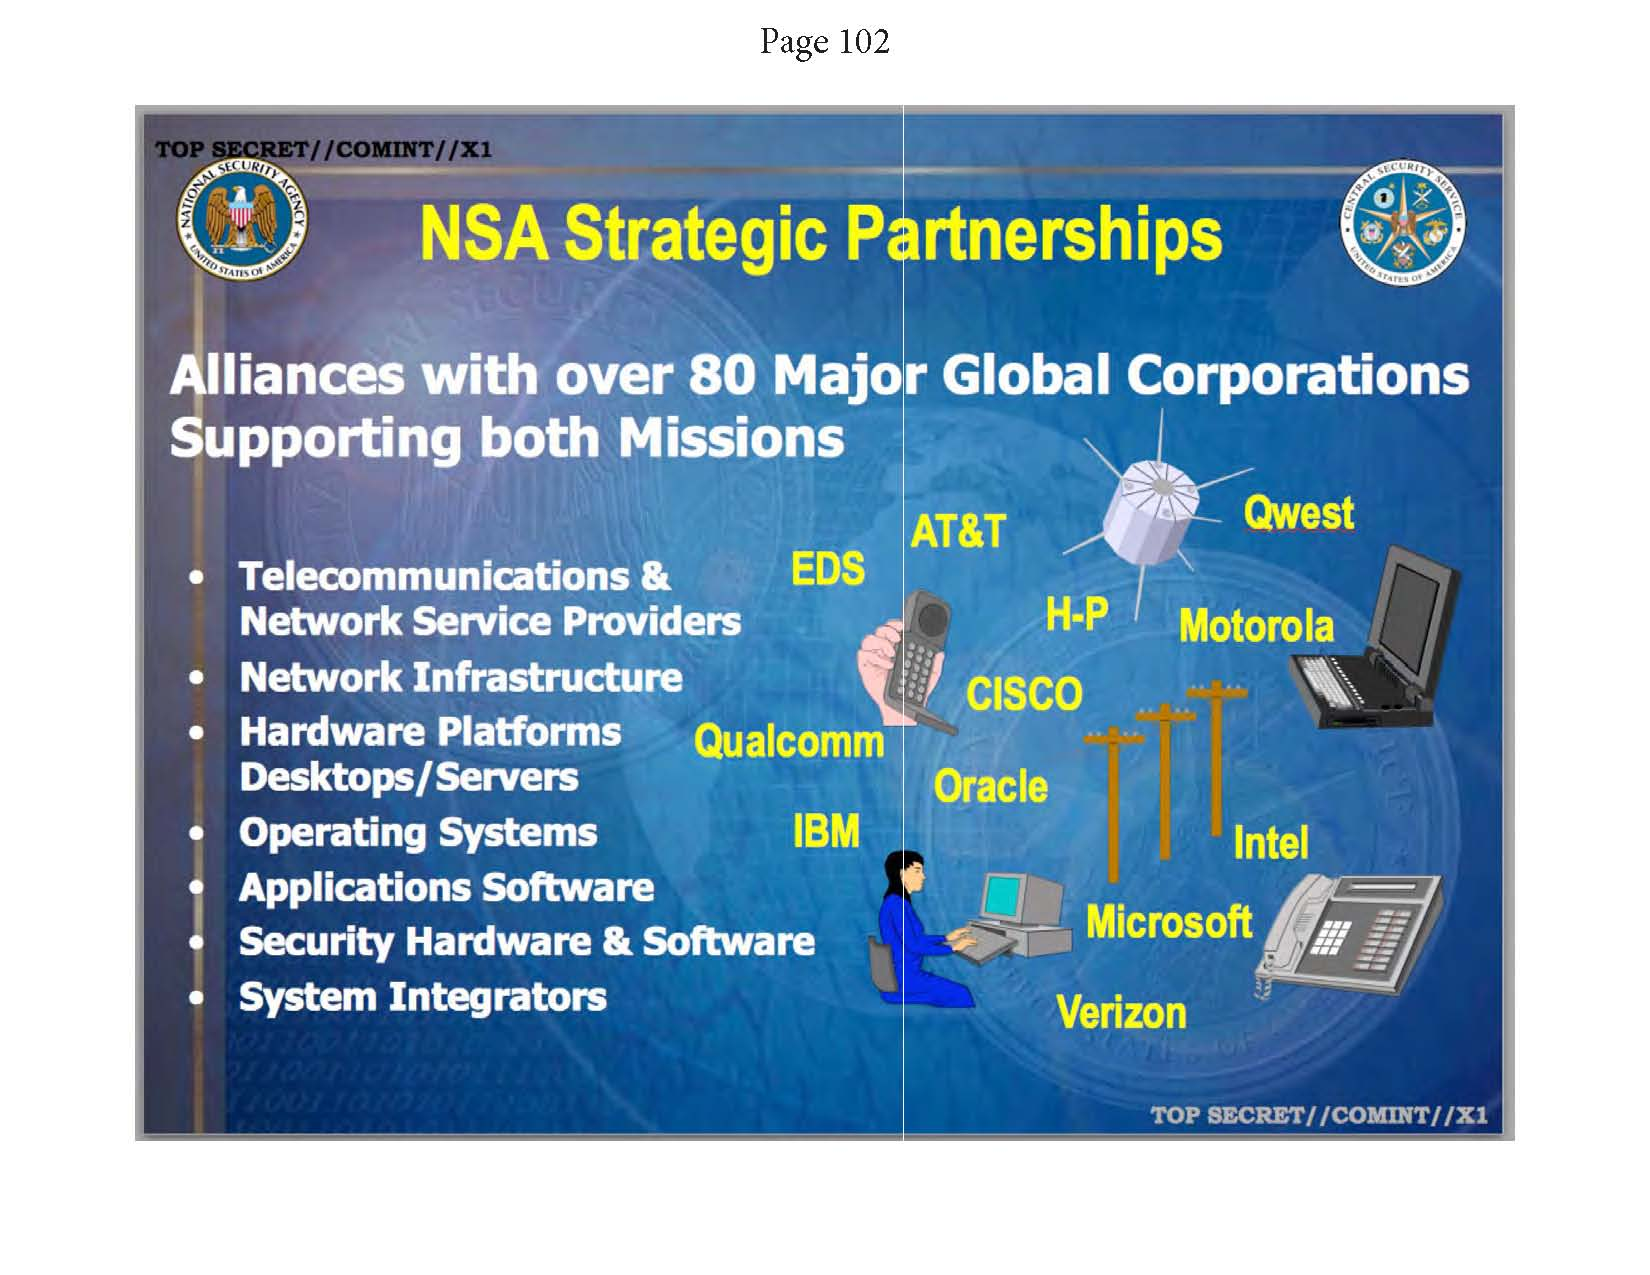 "Greenwald. (May 14, 2014). Snowden NSA archive Documents from No Place to Hide, PDF page 12. Glenn Greenwald / MacMillian. (Glenn Greenwald, p. 102: ""NSA Strategic Partners, Alliances with over 80 Major Global Corporations Supporting both Missions: Telecommunications & Network Service Providers, Network Infrastructure, Hardware Platforms Desktop/Servers, Operating Systems, Applications Software, Securty Hardware & Software, System Integrators: AT&T, CISCO, EDS, H-P [HP, Hewlett-Packard], IBM, Intel, Oracle, Qualcomm, Microsoft, Motorola, Verizon"")."